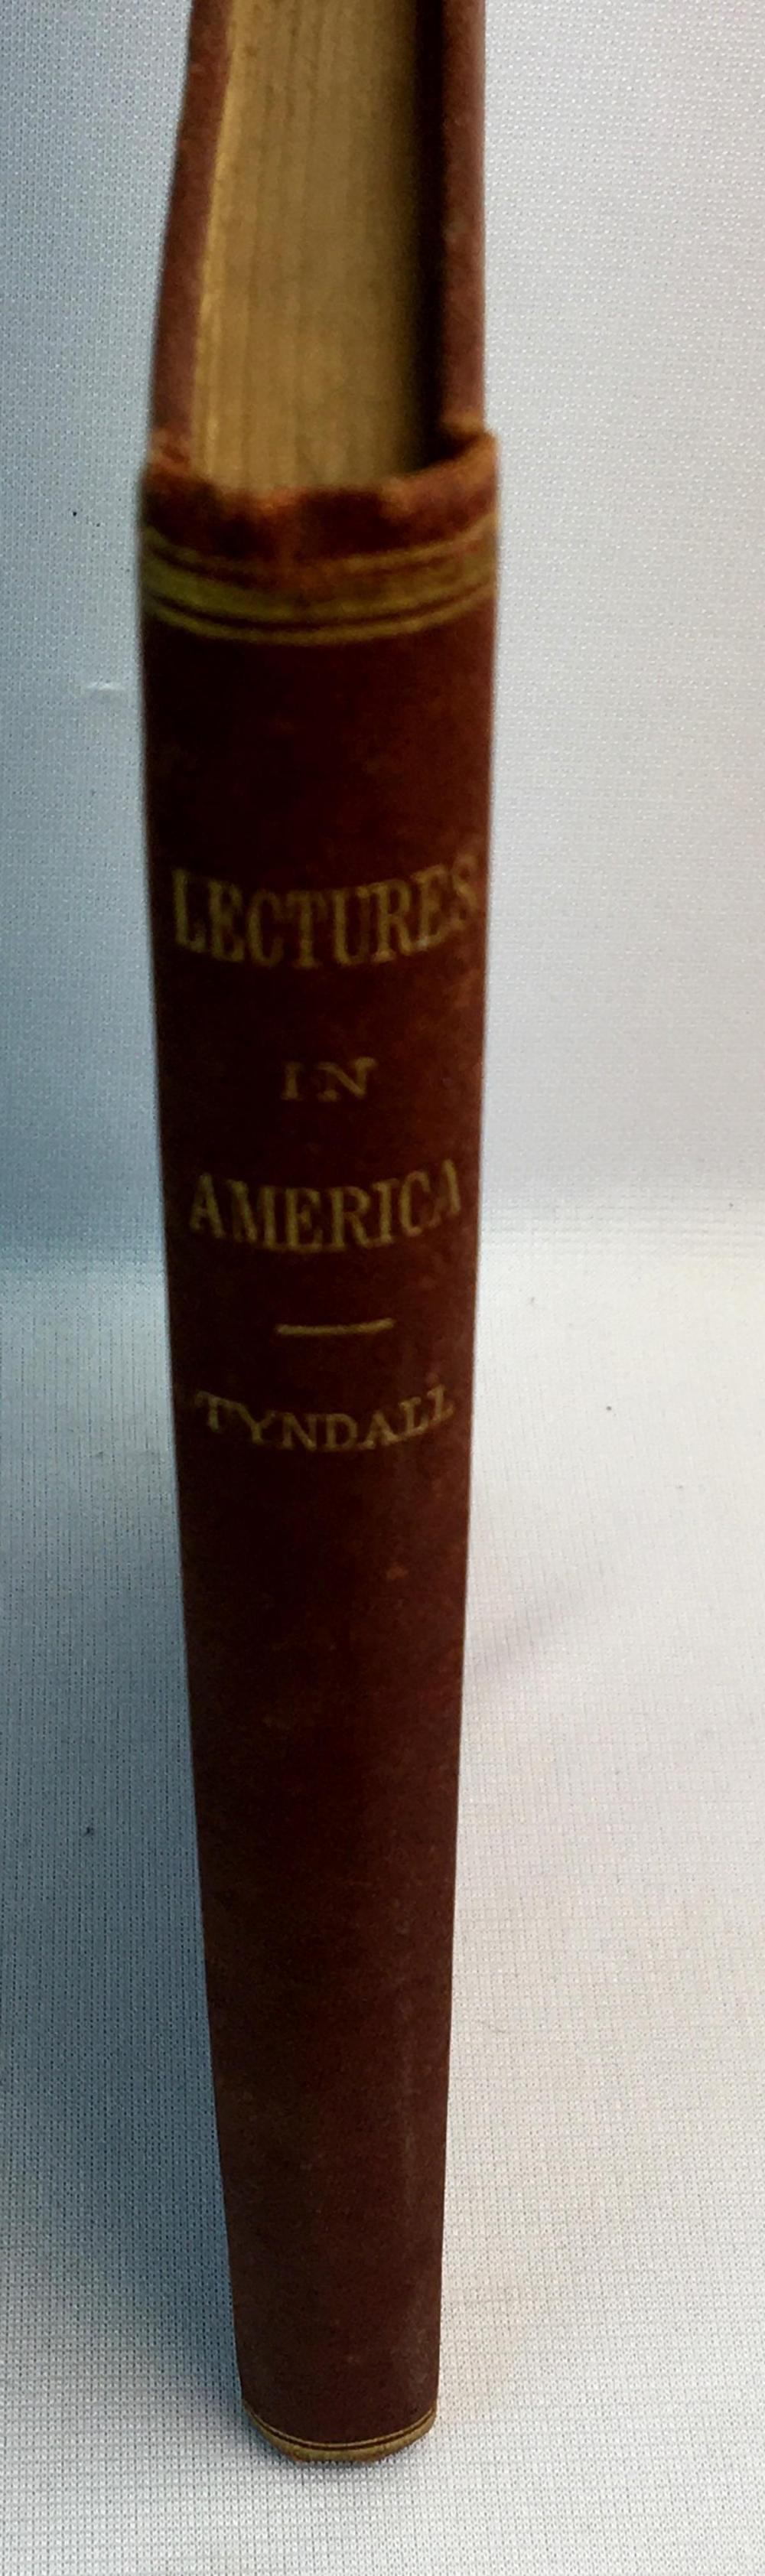 1873 Lectures on Light: Delivered in the United States in 1872 - '73 by John Tyndall Illustrated FIRST EDITION